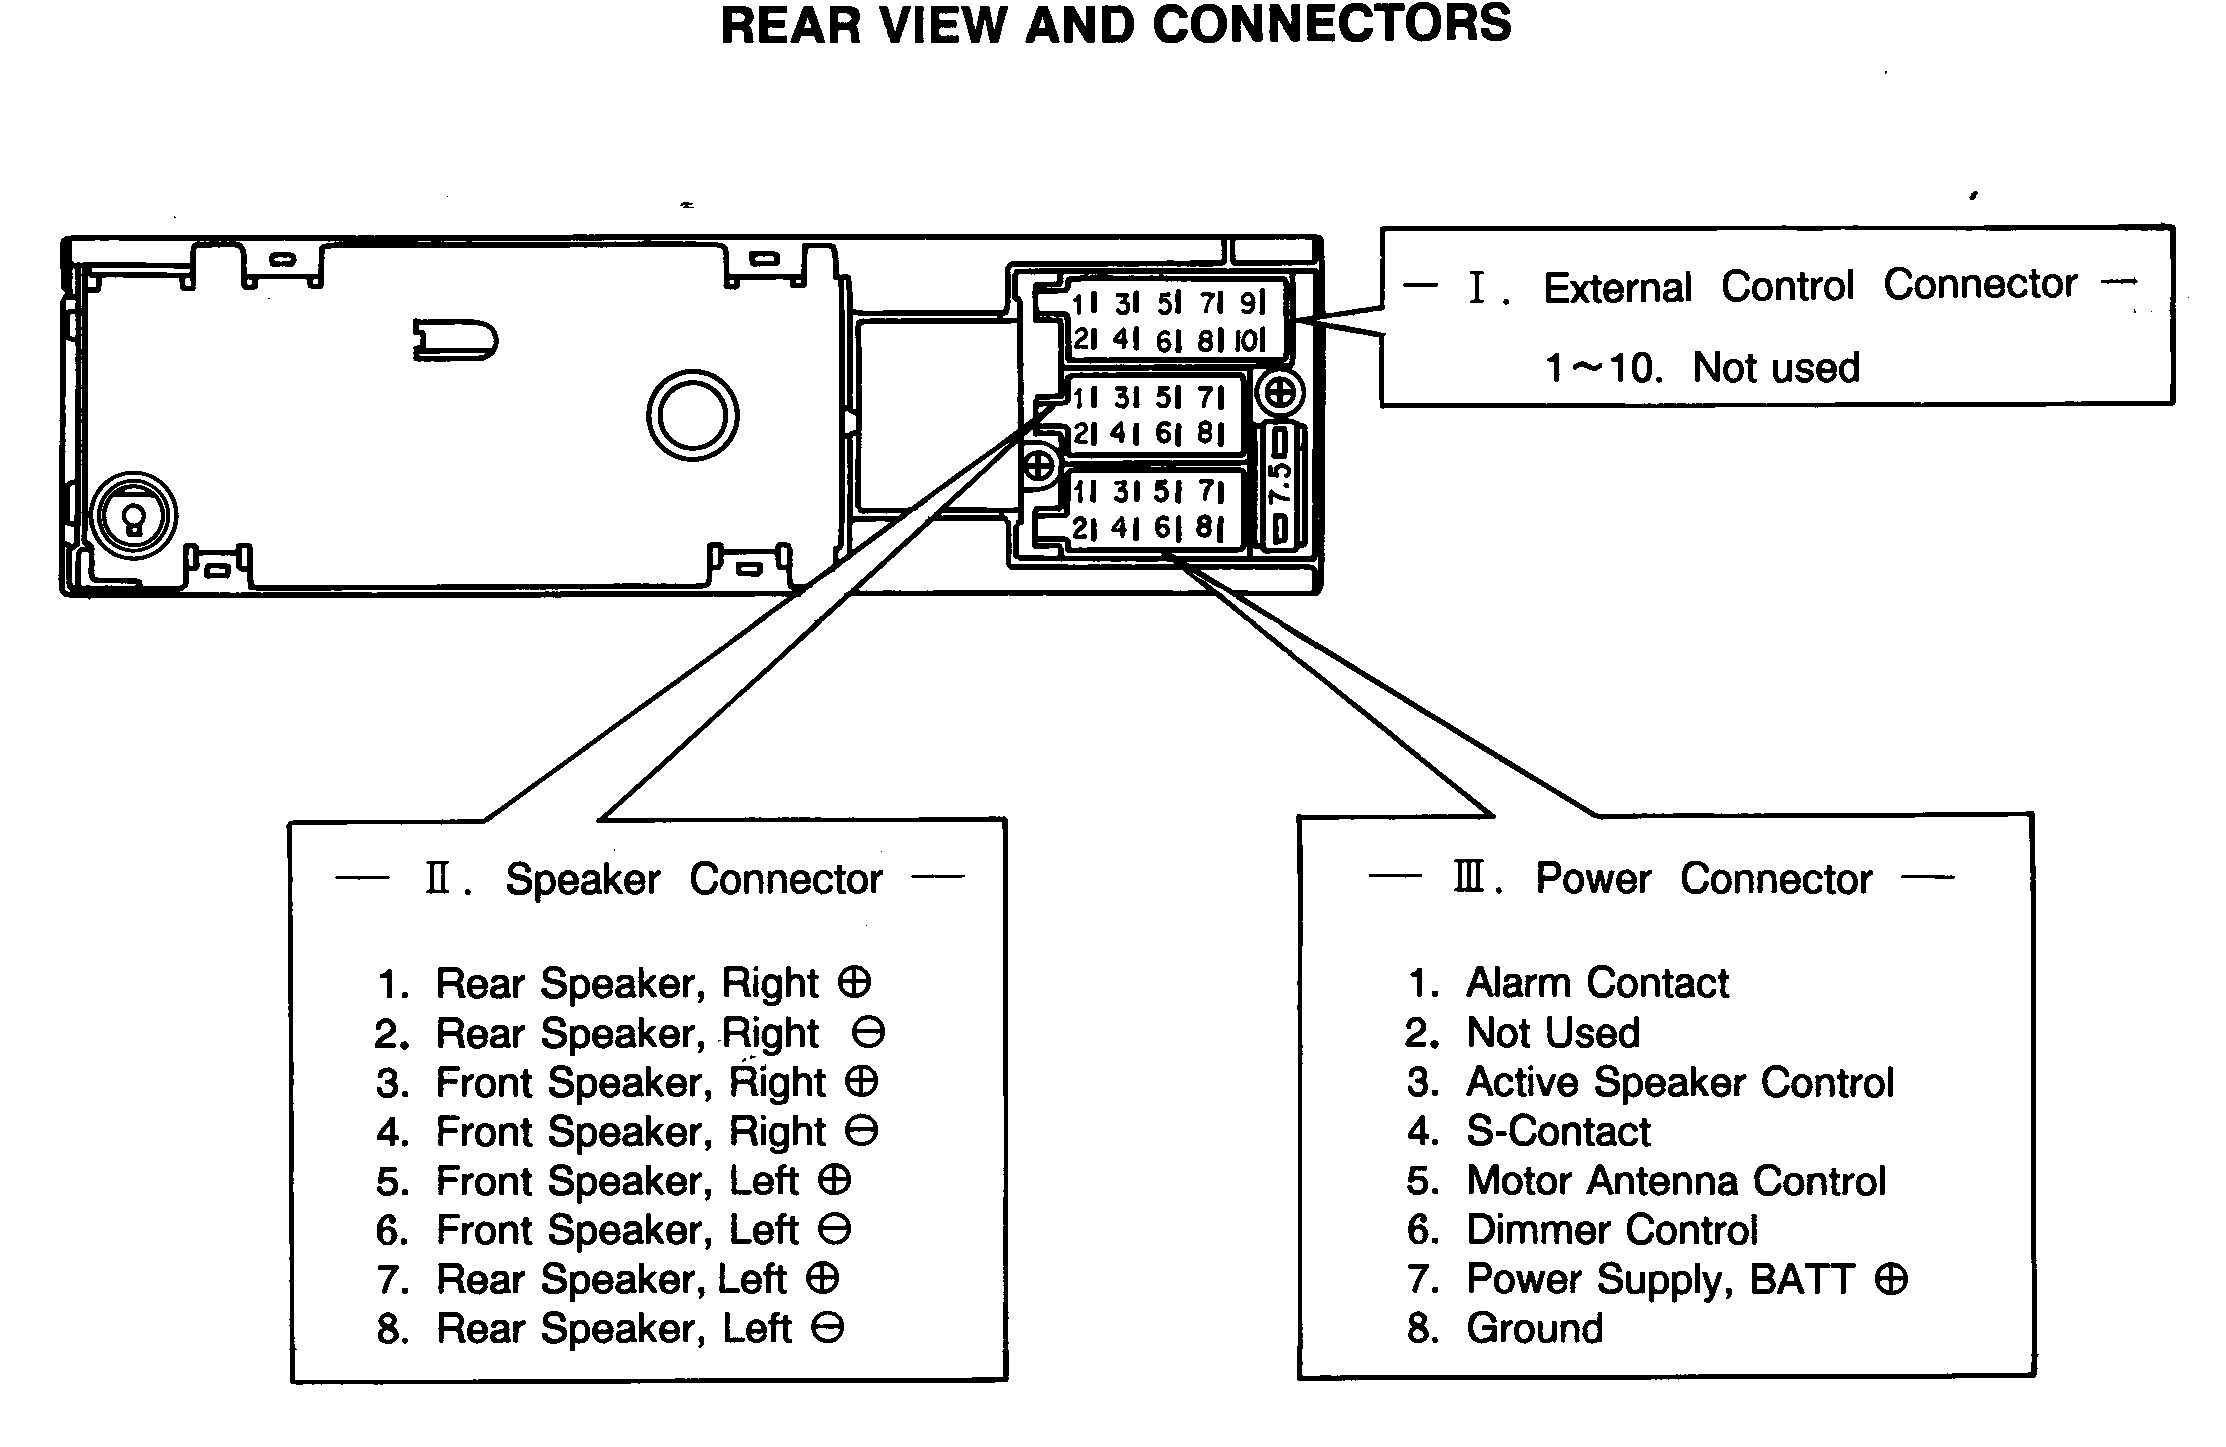 Rd 5715 2004 Nissan Wiring Diagram Download Diagram